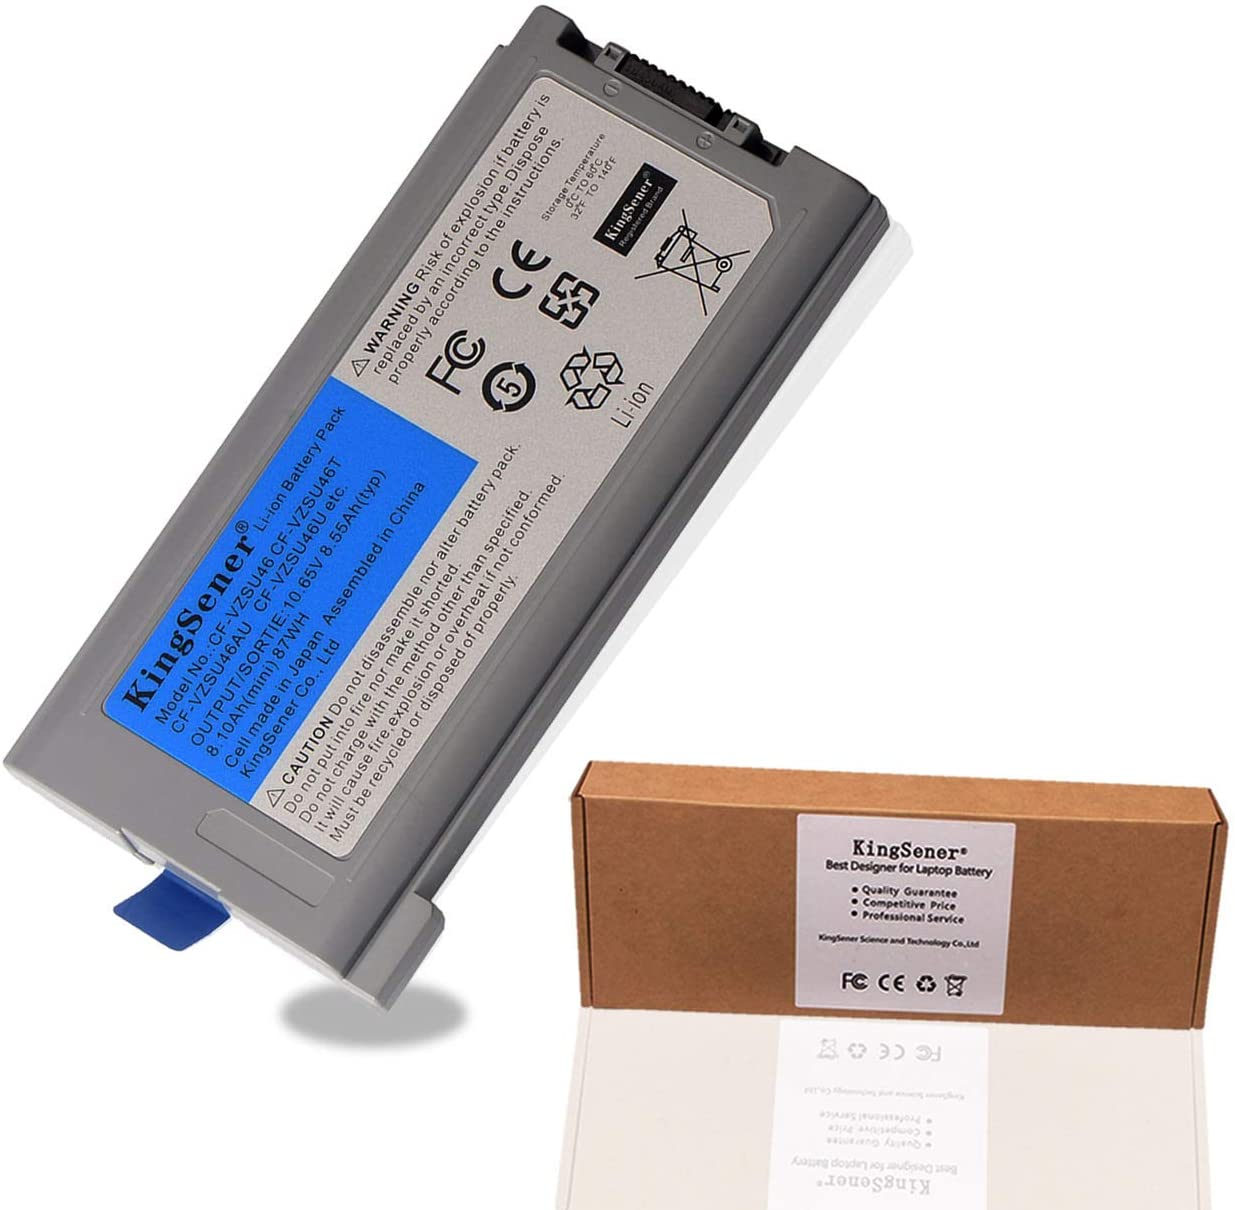 KingSener 10.65V 8.55Ah Laptop Battery CF-VZSU46 for Panasonic Toughbook CF-30 CF-31 CF-53 CF-VZSU46AU CF-VZSU46U CF-VZSU46S